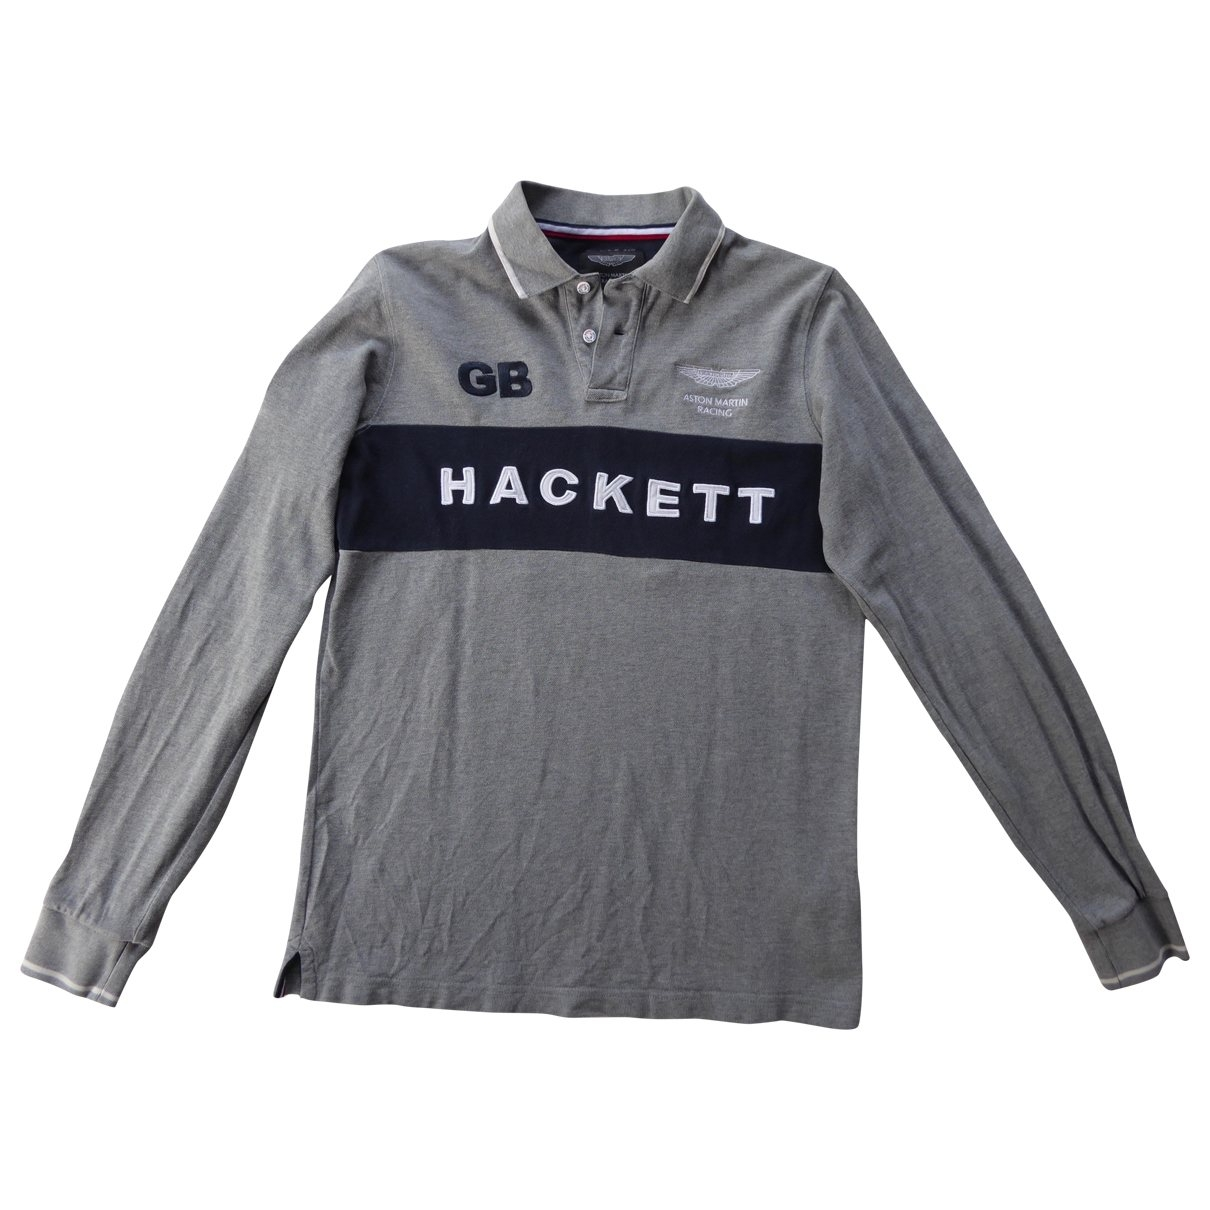 Hackett London \N Grey Cotton  top for Kids 16 years - M FR